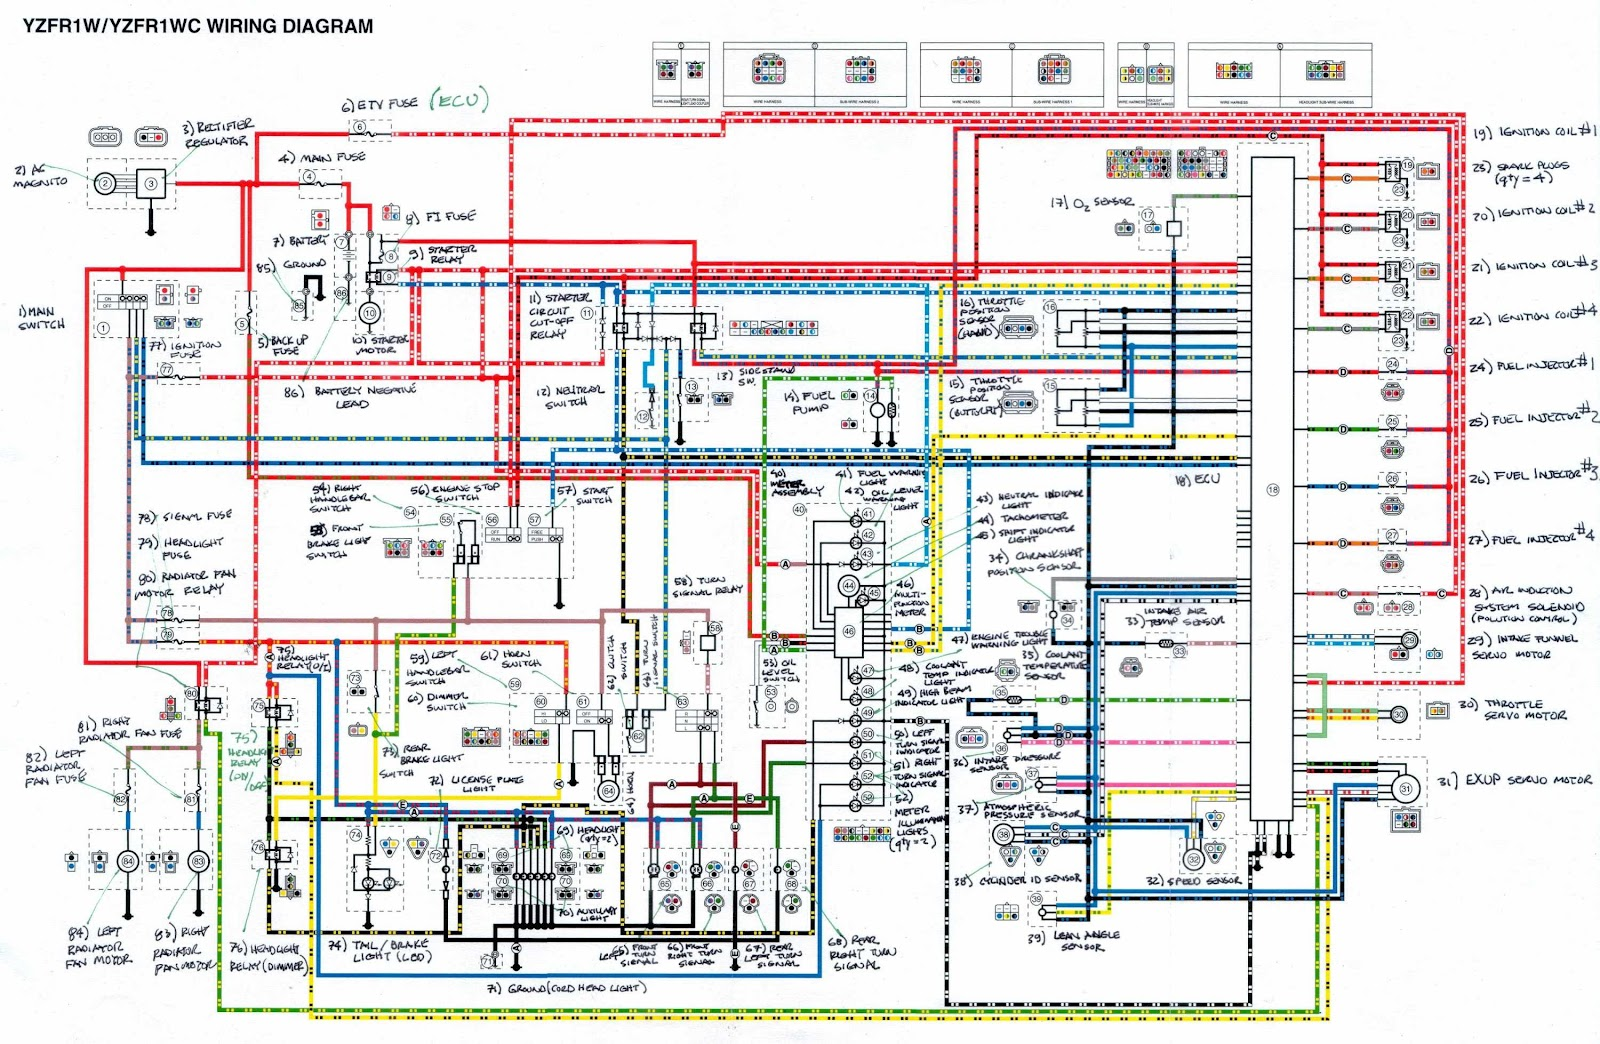 2008 r6 wiring harness diagram #5 Ninja 250 Wiring Diagram 2008 r6 wiring harness diagram